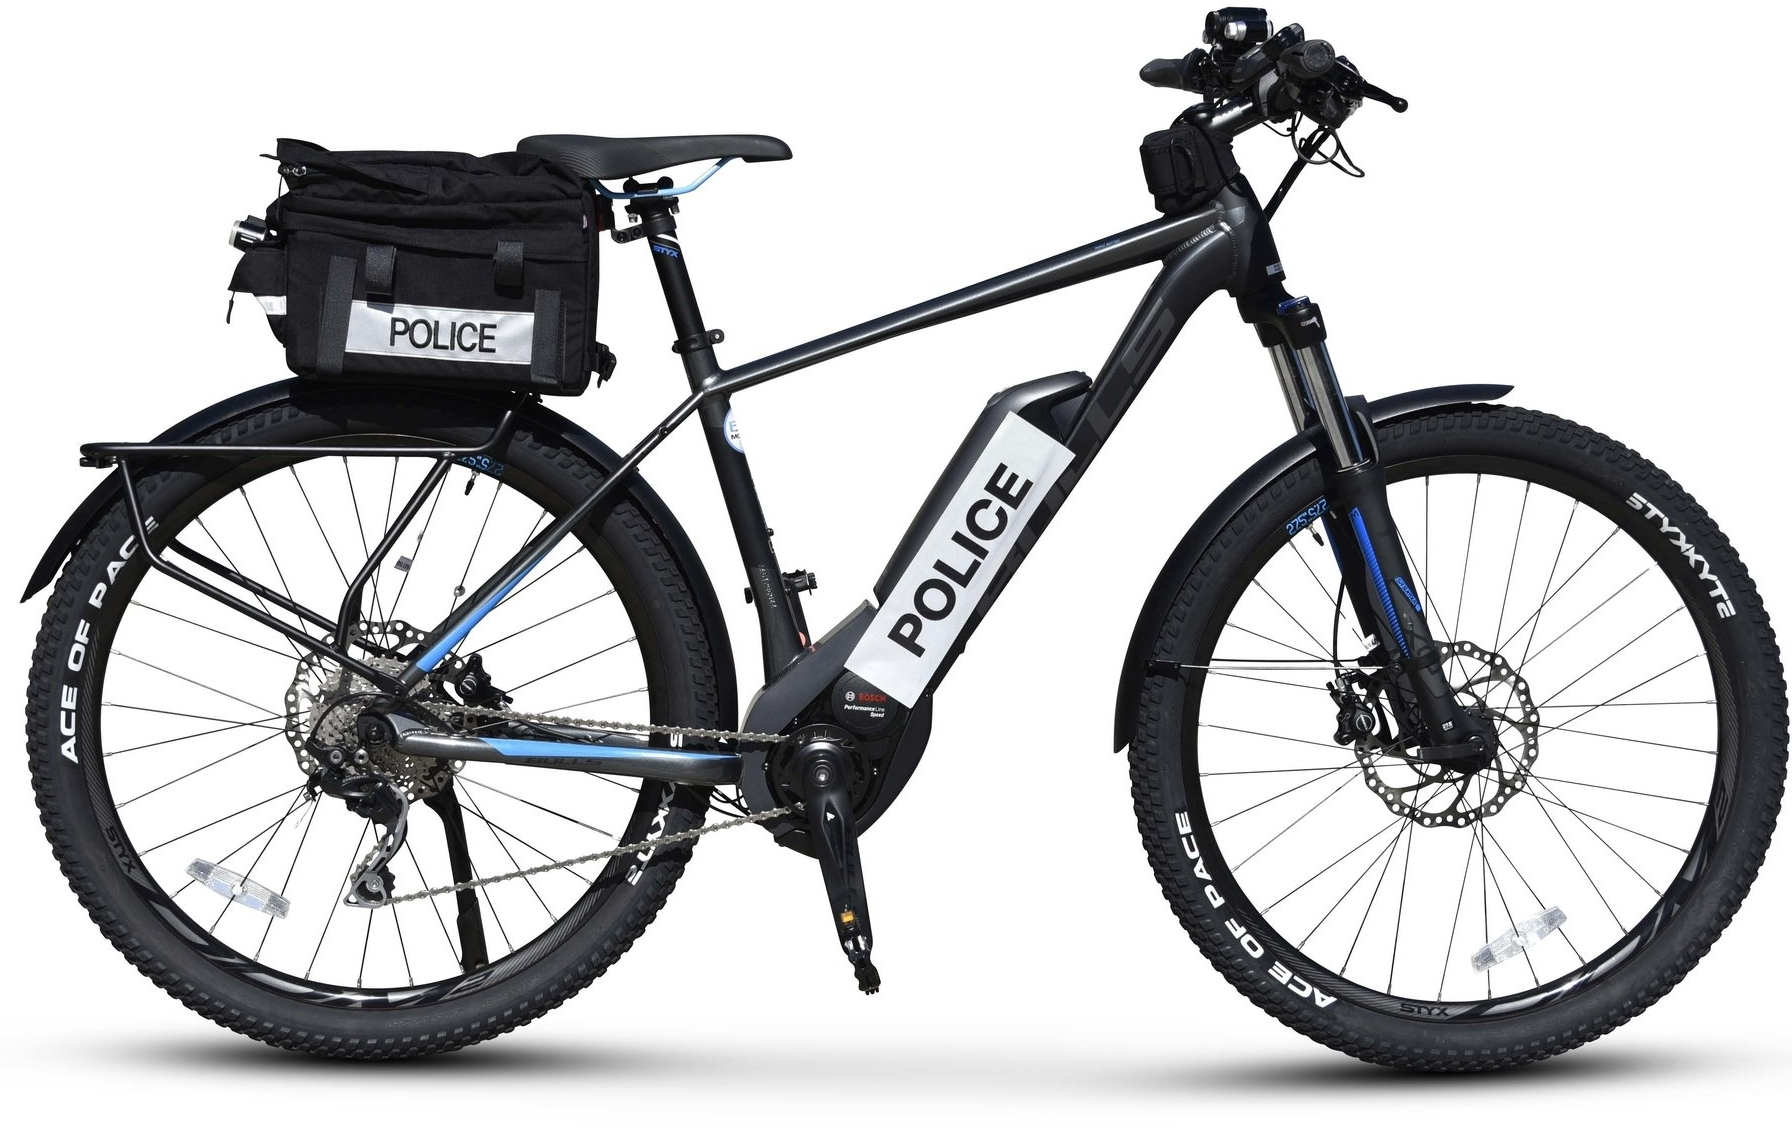 bulls ebikes and the police ebike central. Black Bedroom Furniture Sets. Home Design Ideas